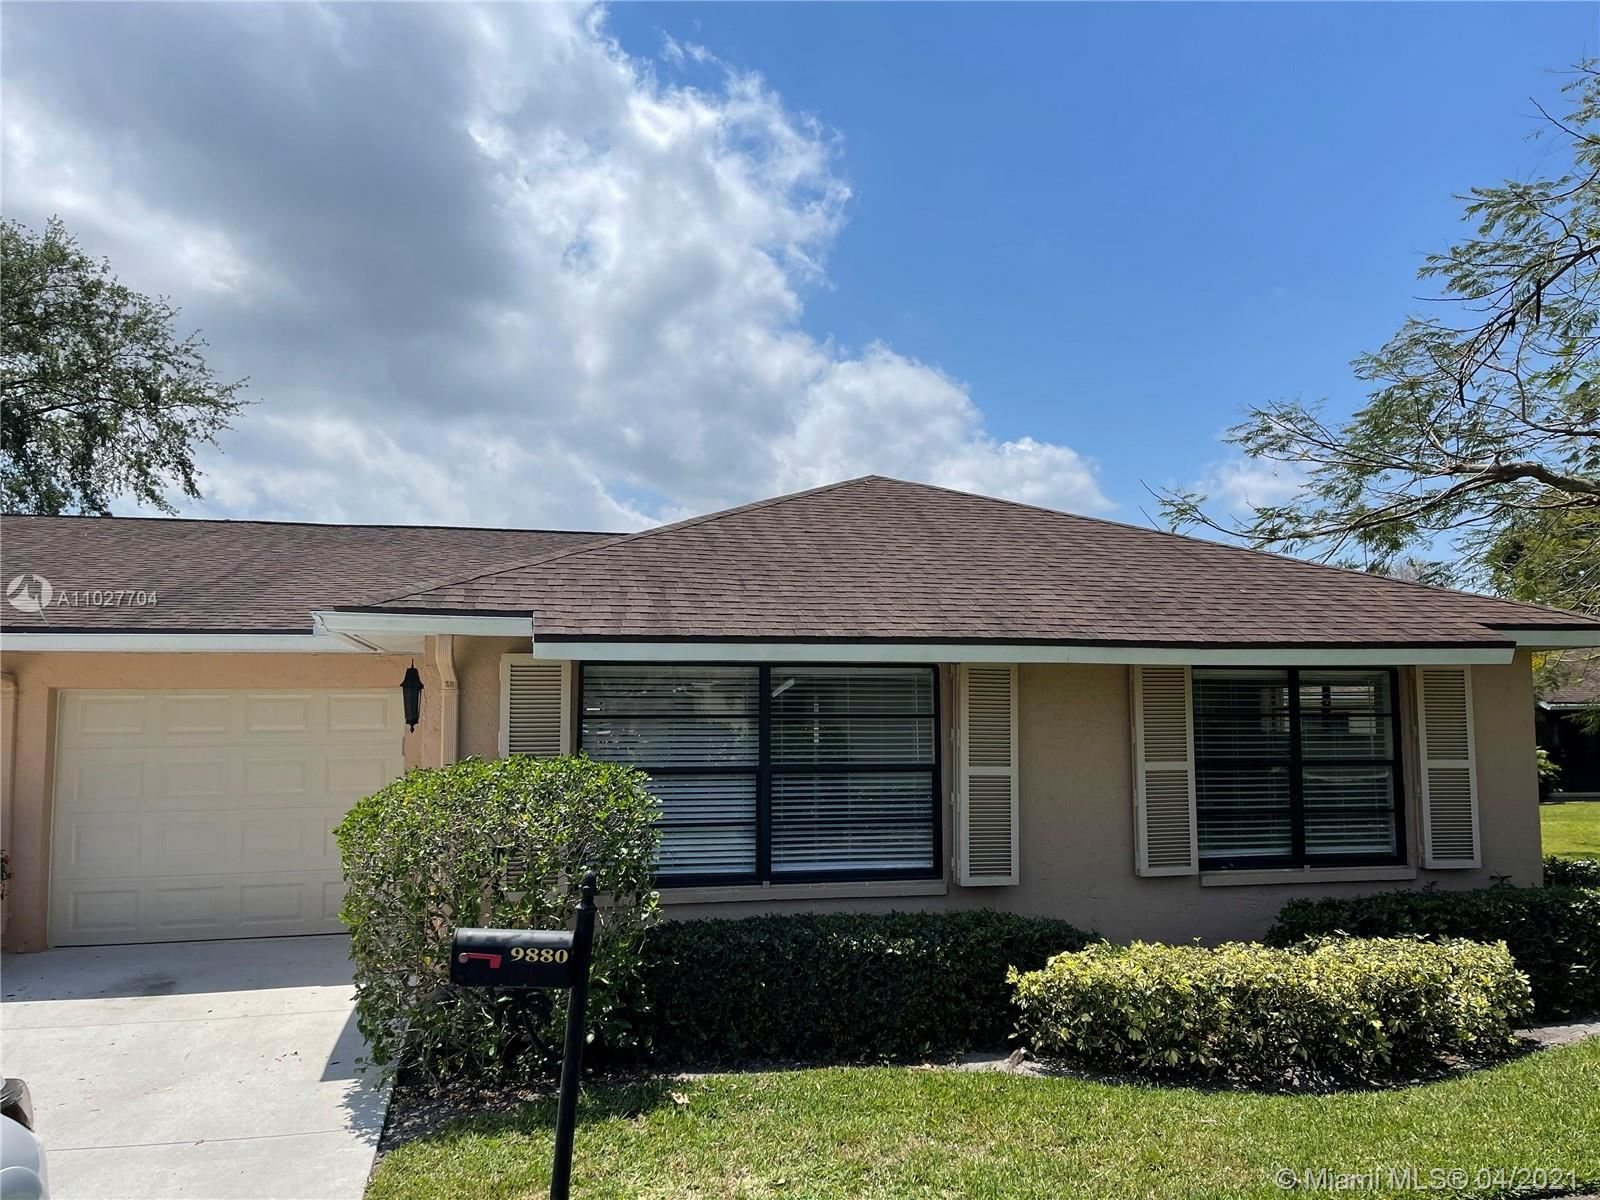 9880 Loquat Tree Run #B, Boynton Beach, FL 33436 - #: A11027704